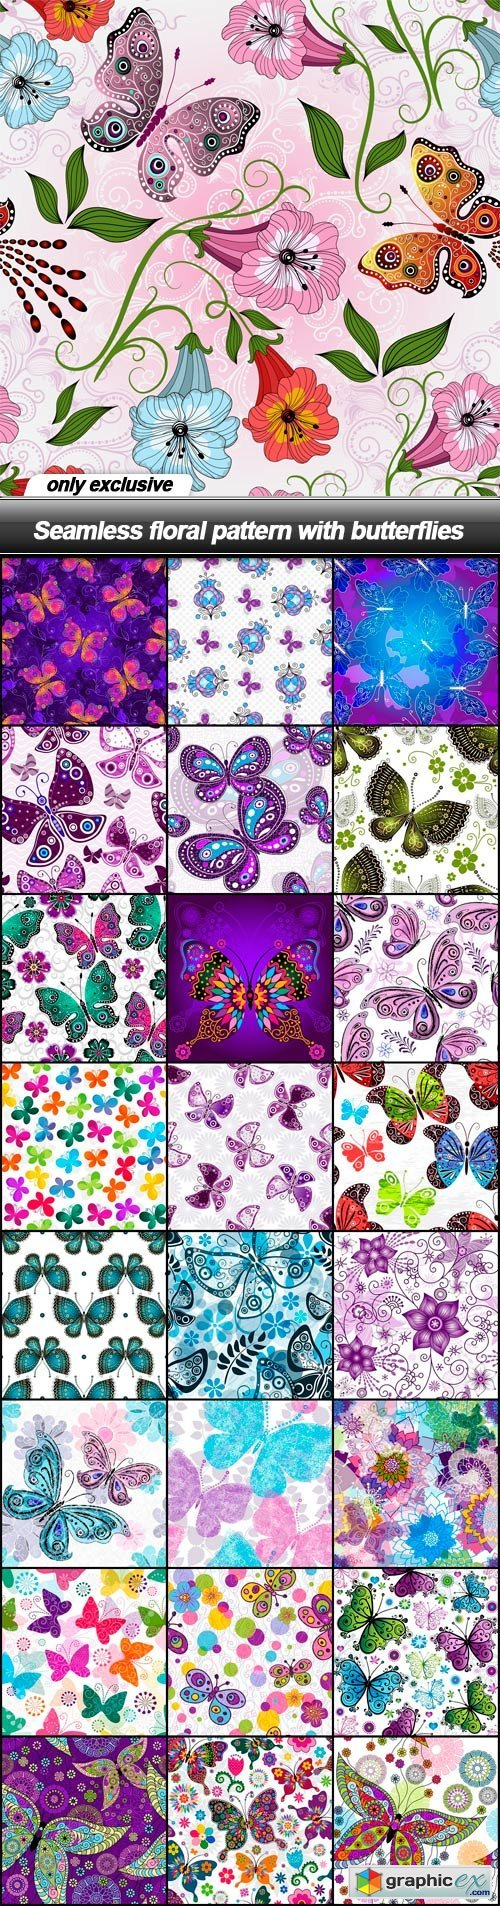 Seamless floral pattern with butterflies - 25 EPS